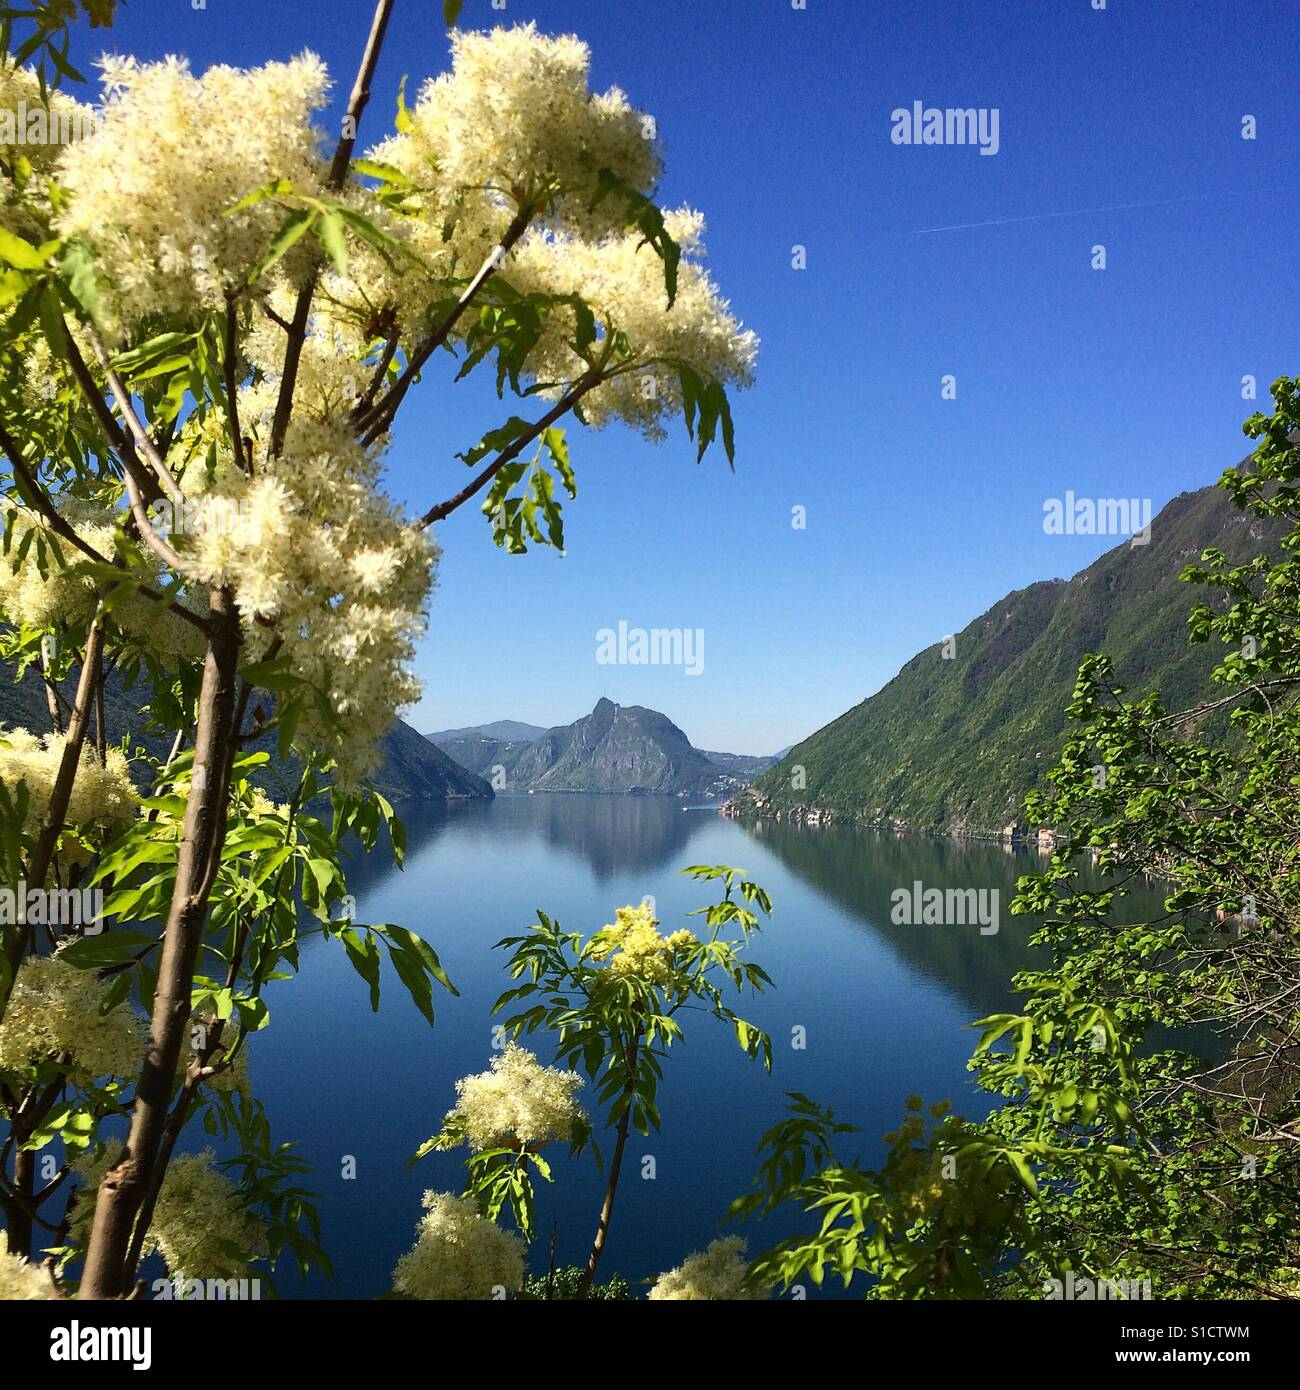 Spring on the Lake - Stock Image